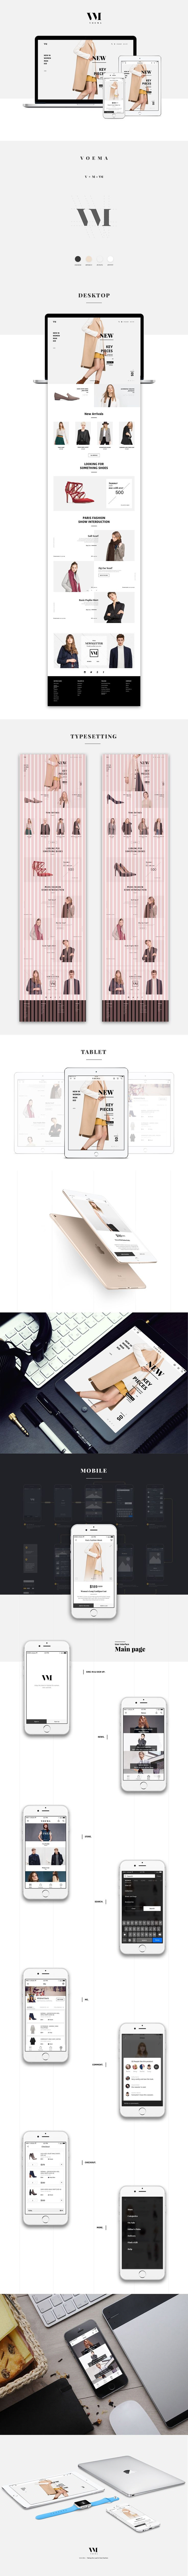 V O E M A on Web Design Served